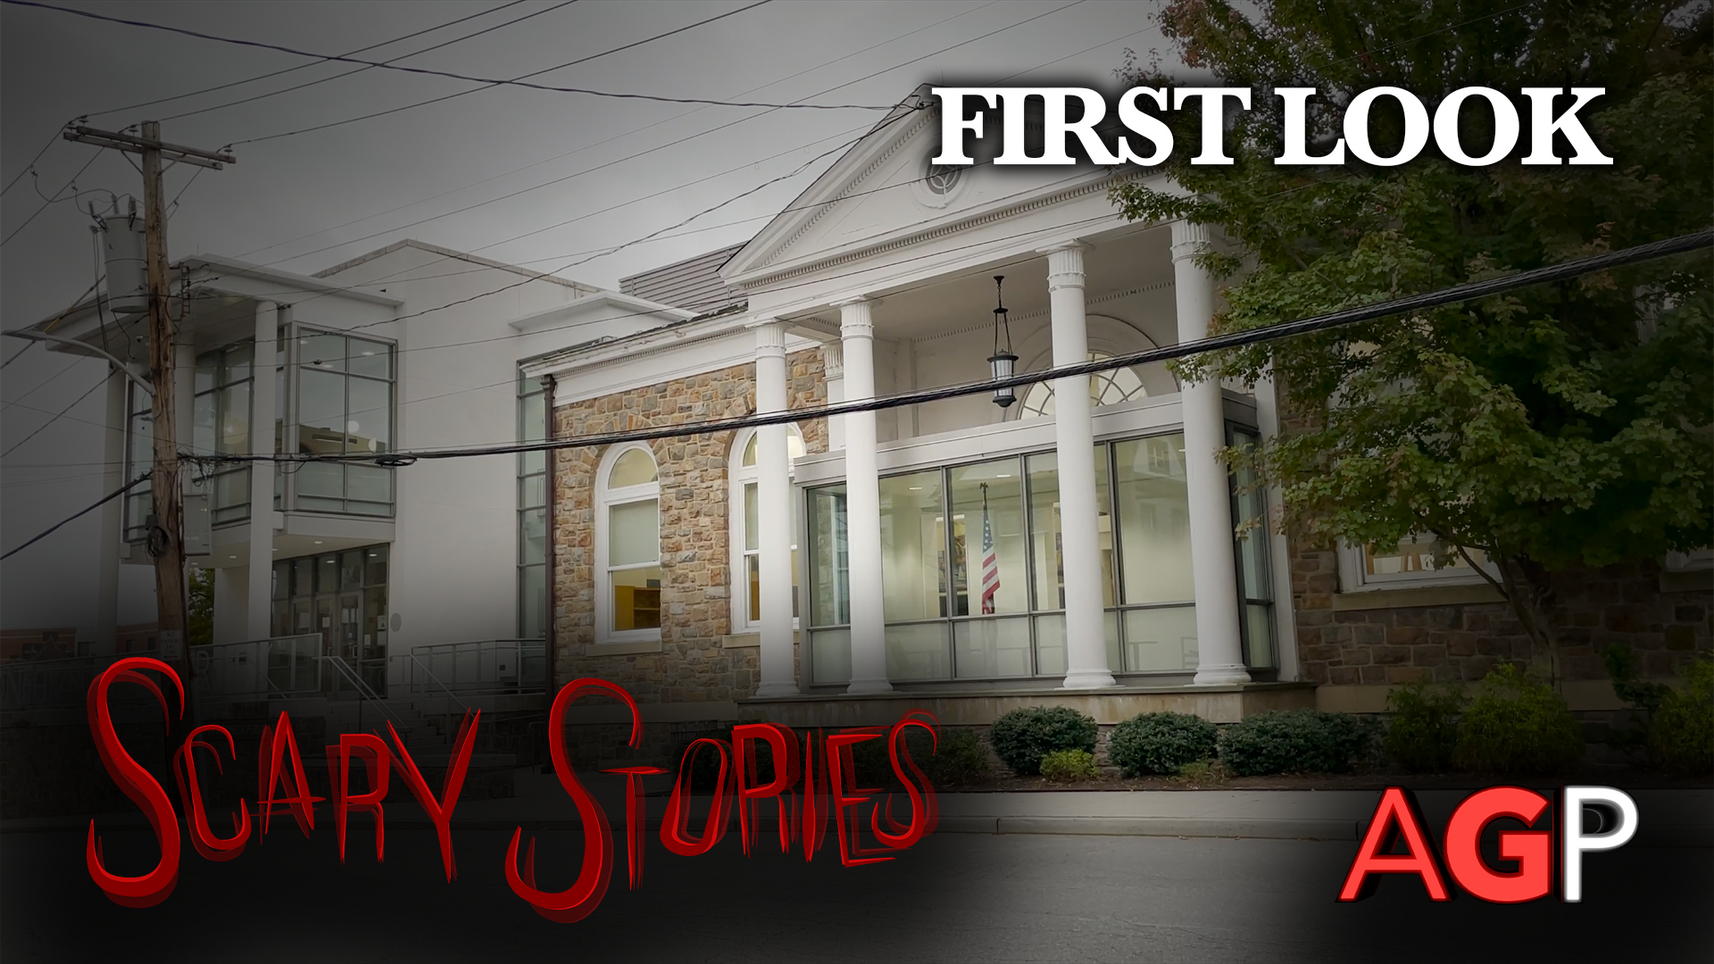 First Look   SCARY STORIES